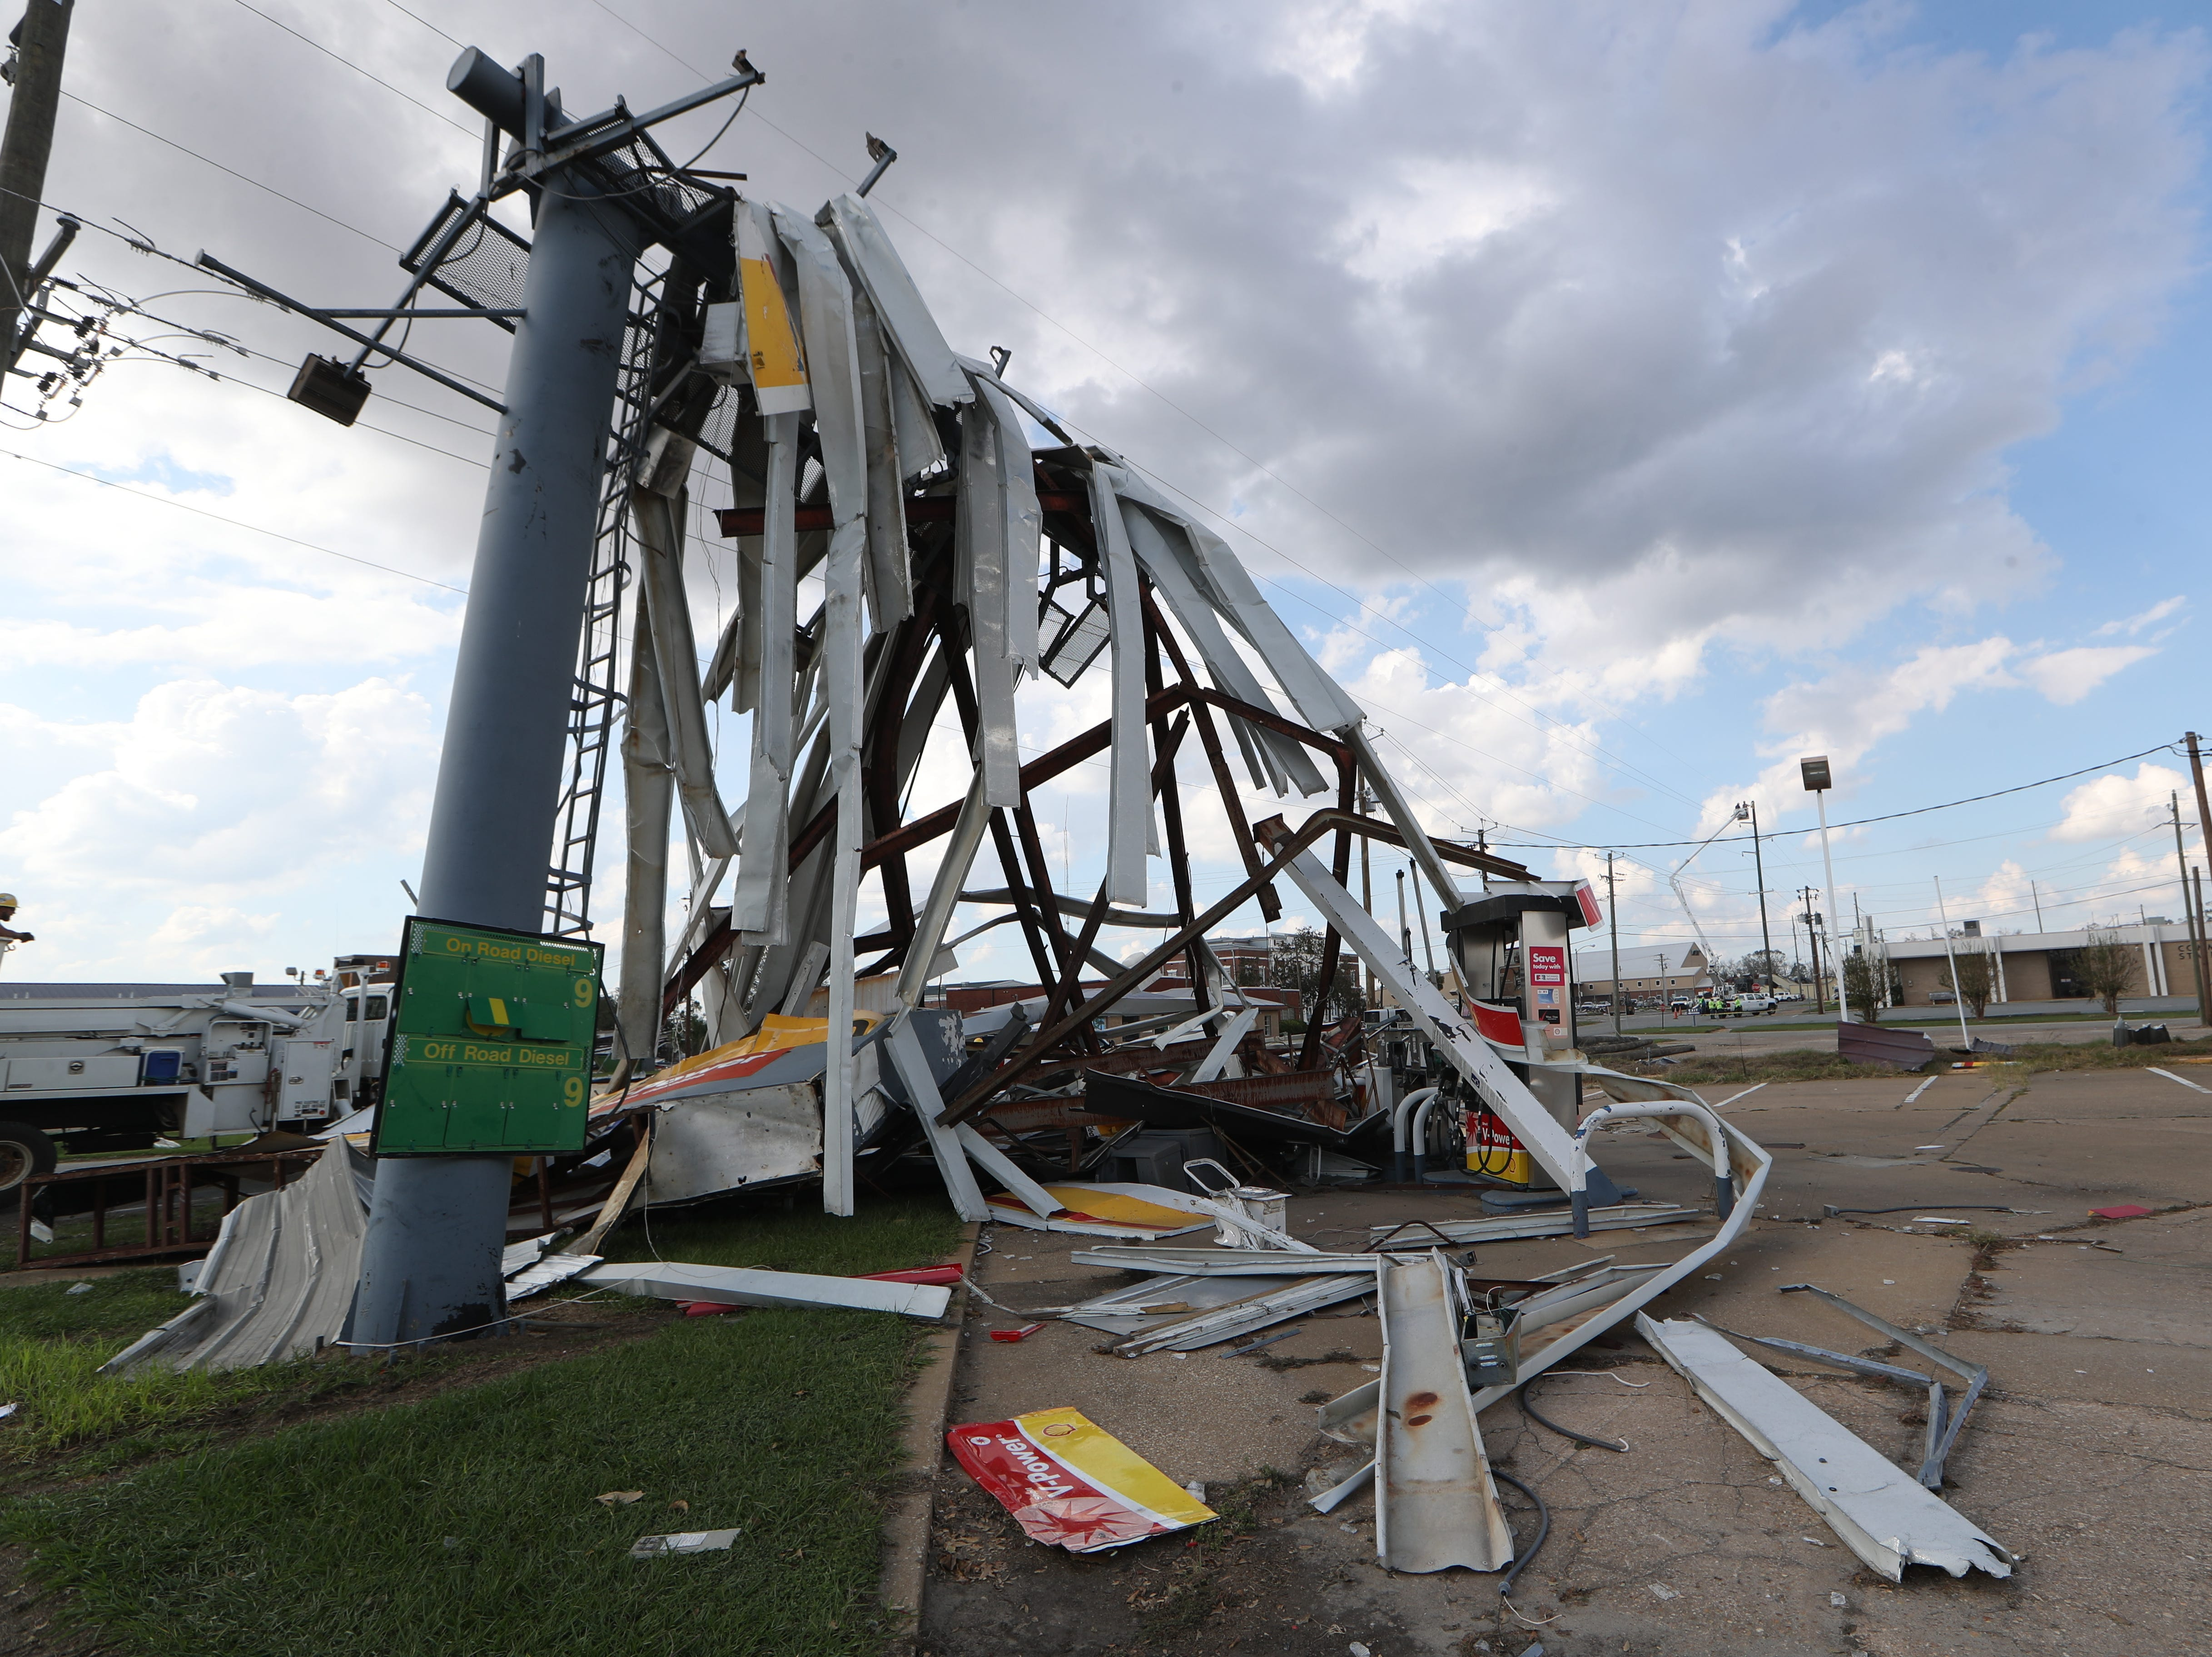 The Shell gas station on West Third Street in Donalsonville, Ga. is destroyed in the aftermath of Hurricane Michael Wednesday, Oct. 17, 2018.